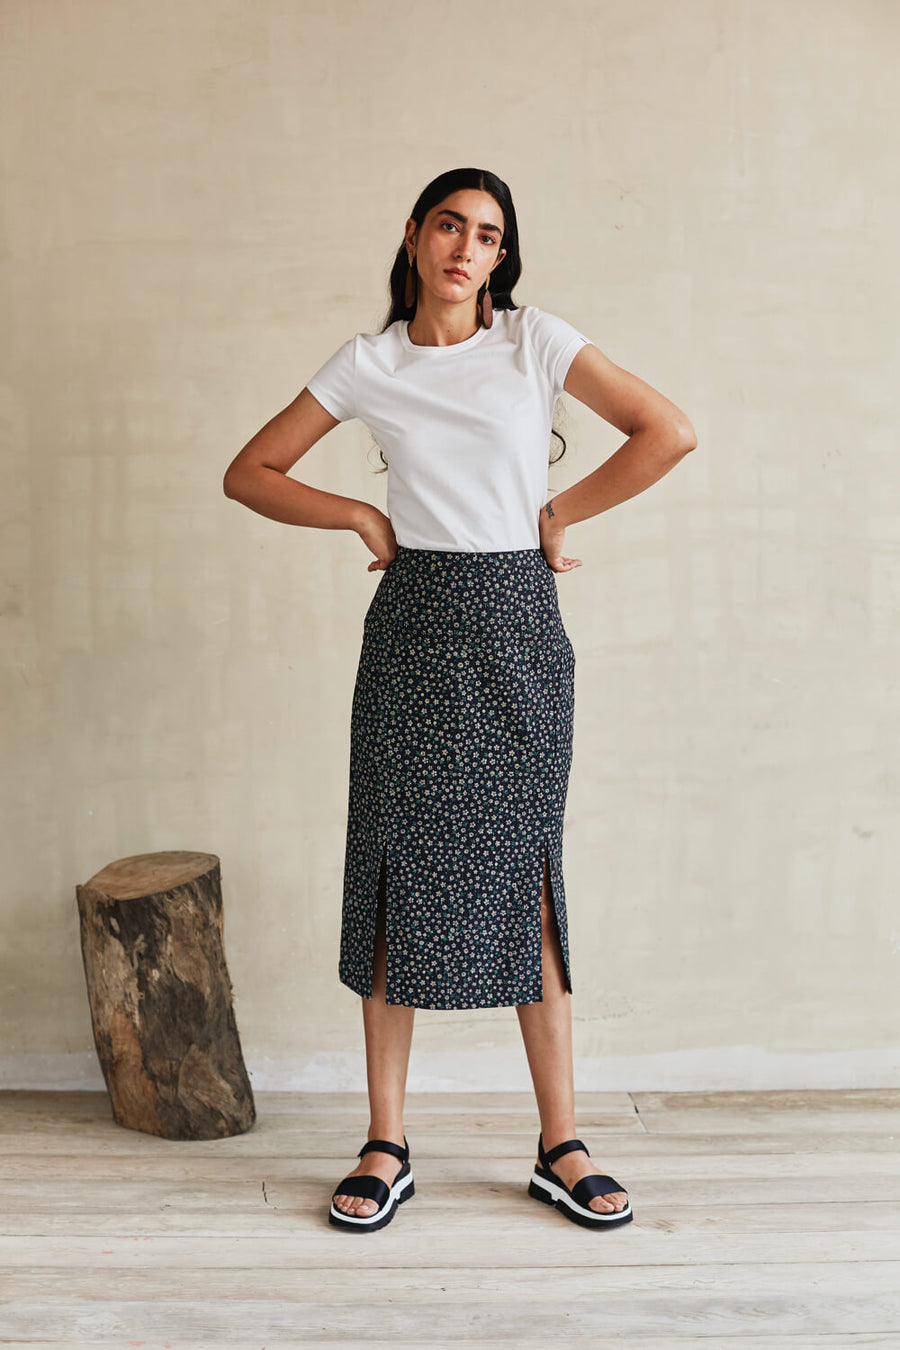 Floral Bounty Midi Skirt - Ethical made fashion - onlyethikal